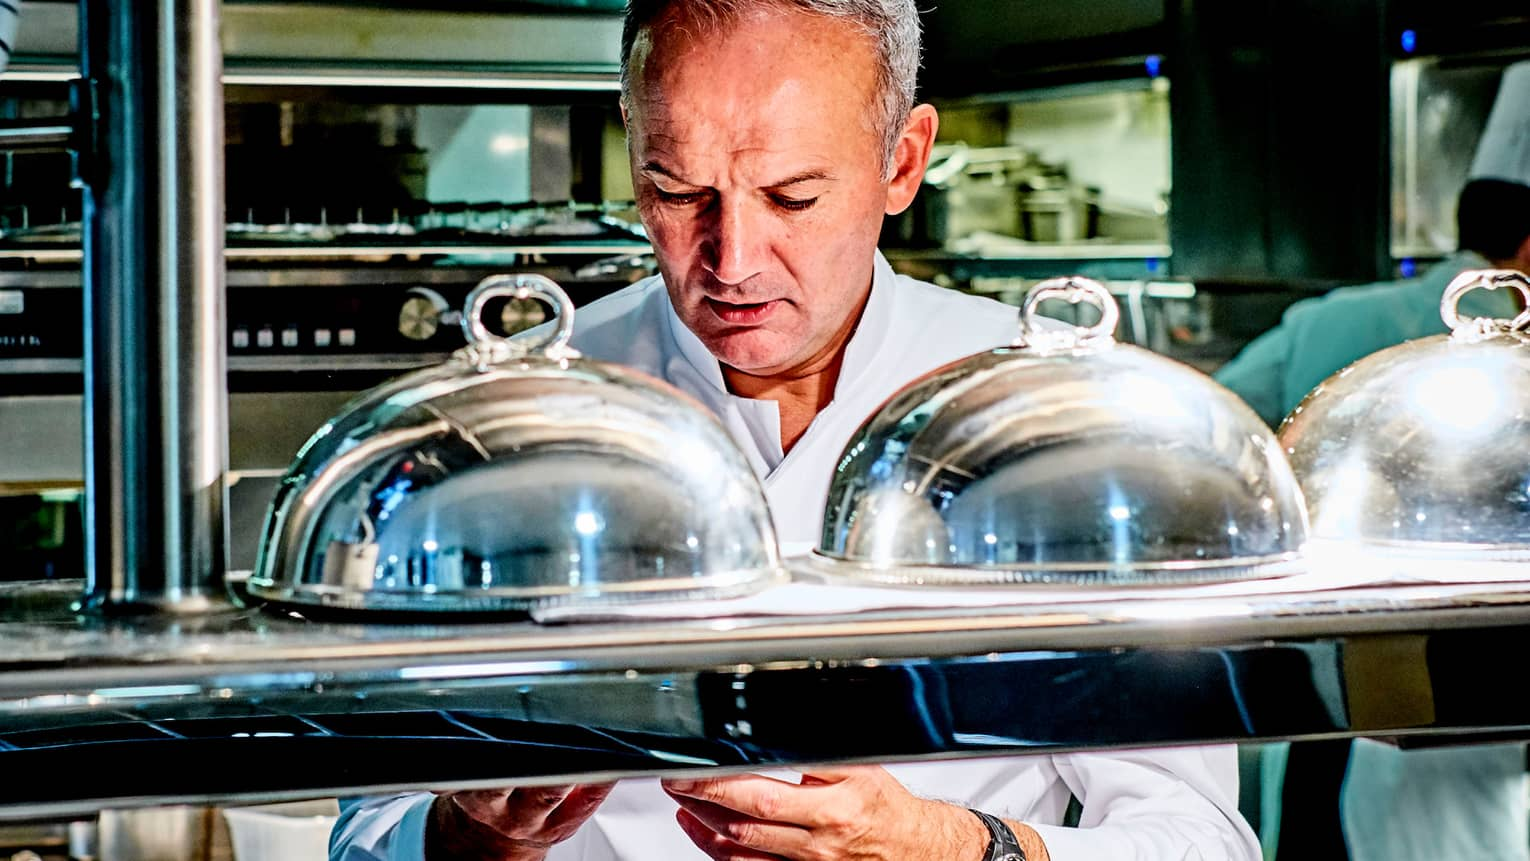 Le Cinq Chef Christian Le Squer behind kitchen line with metal cloche plate covers